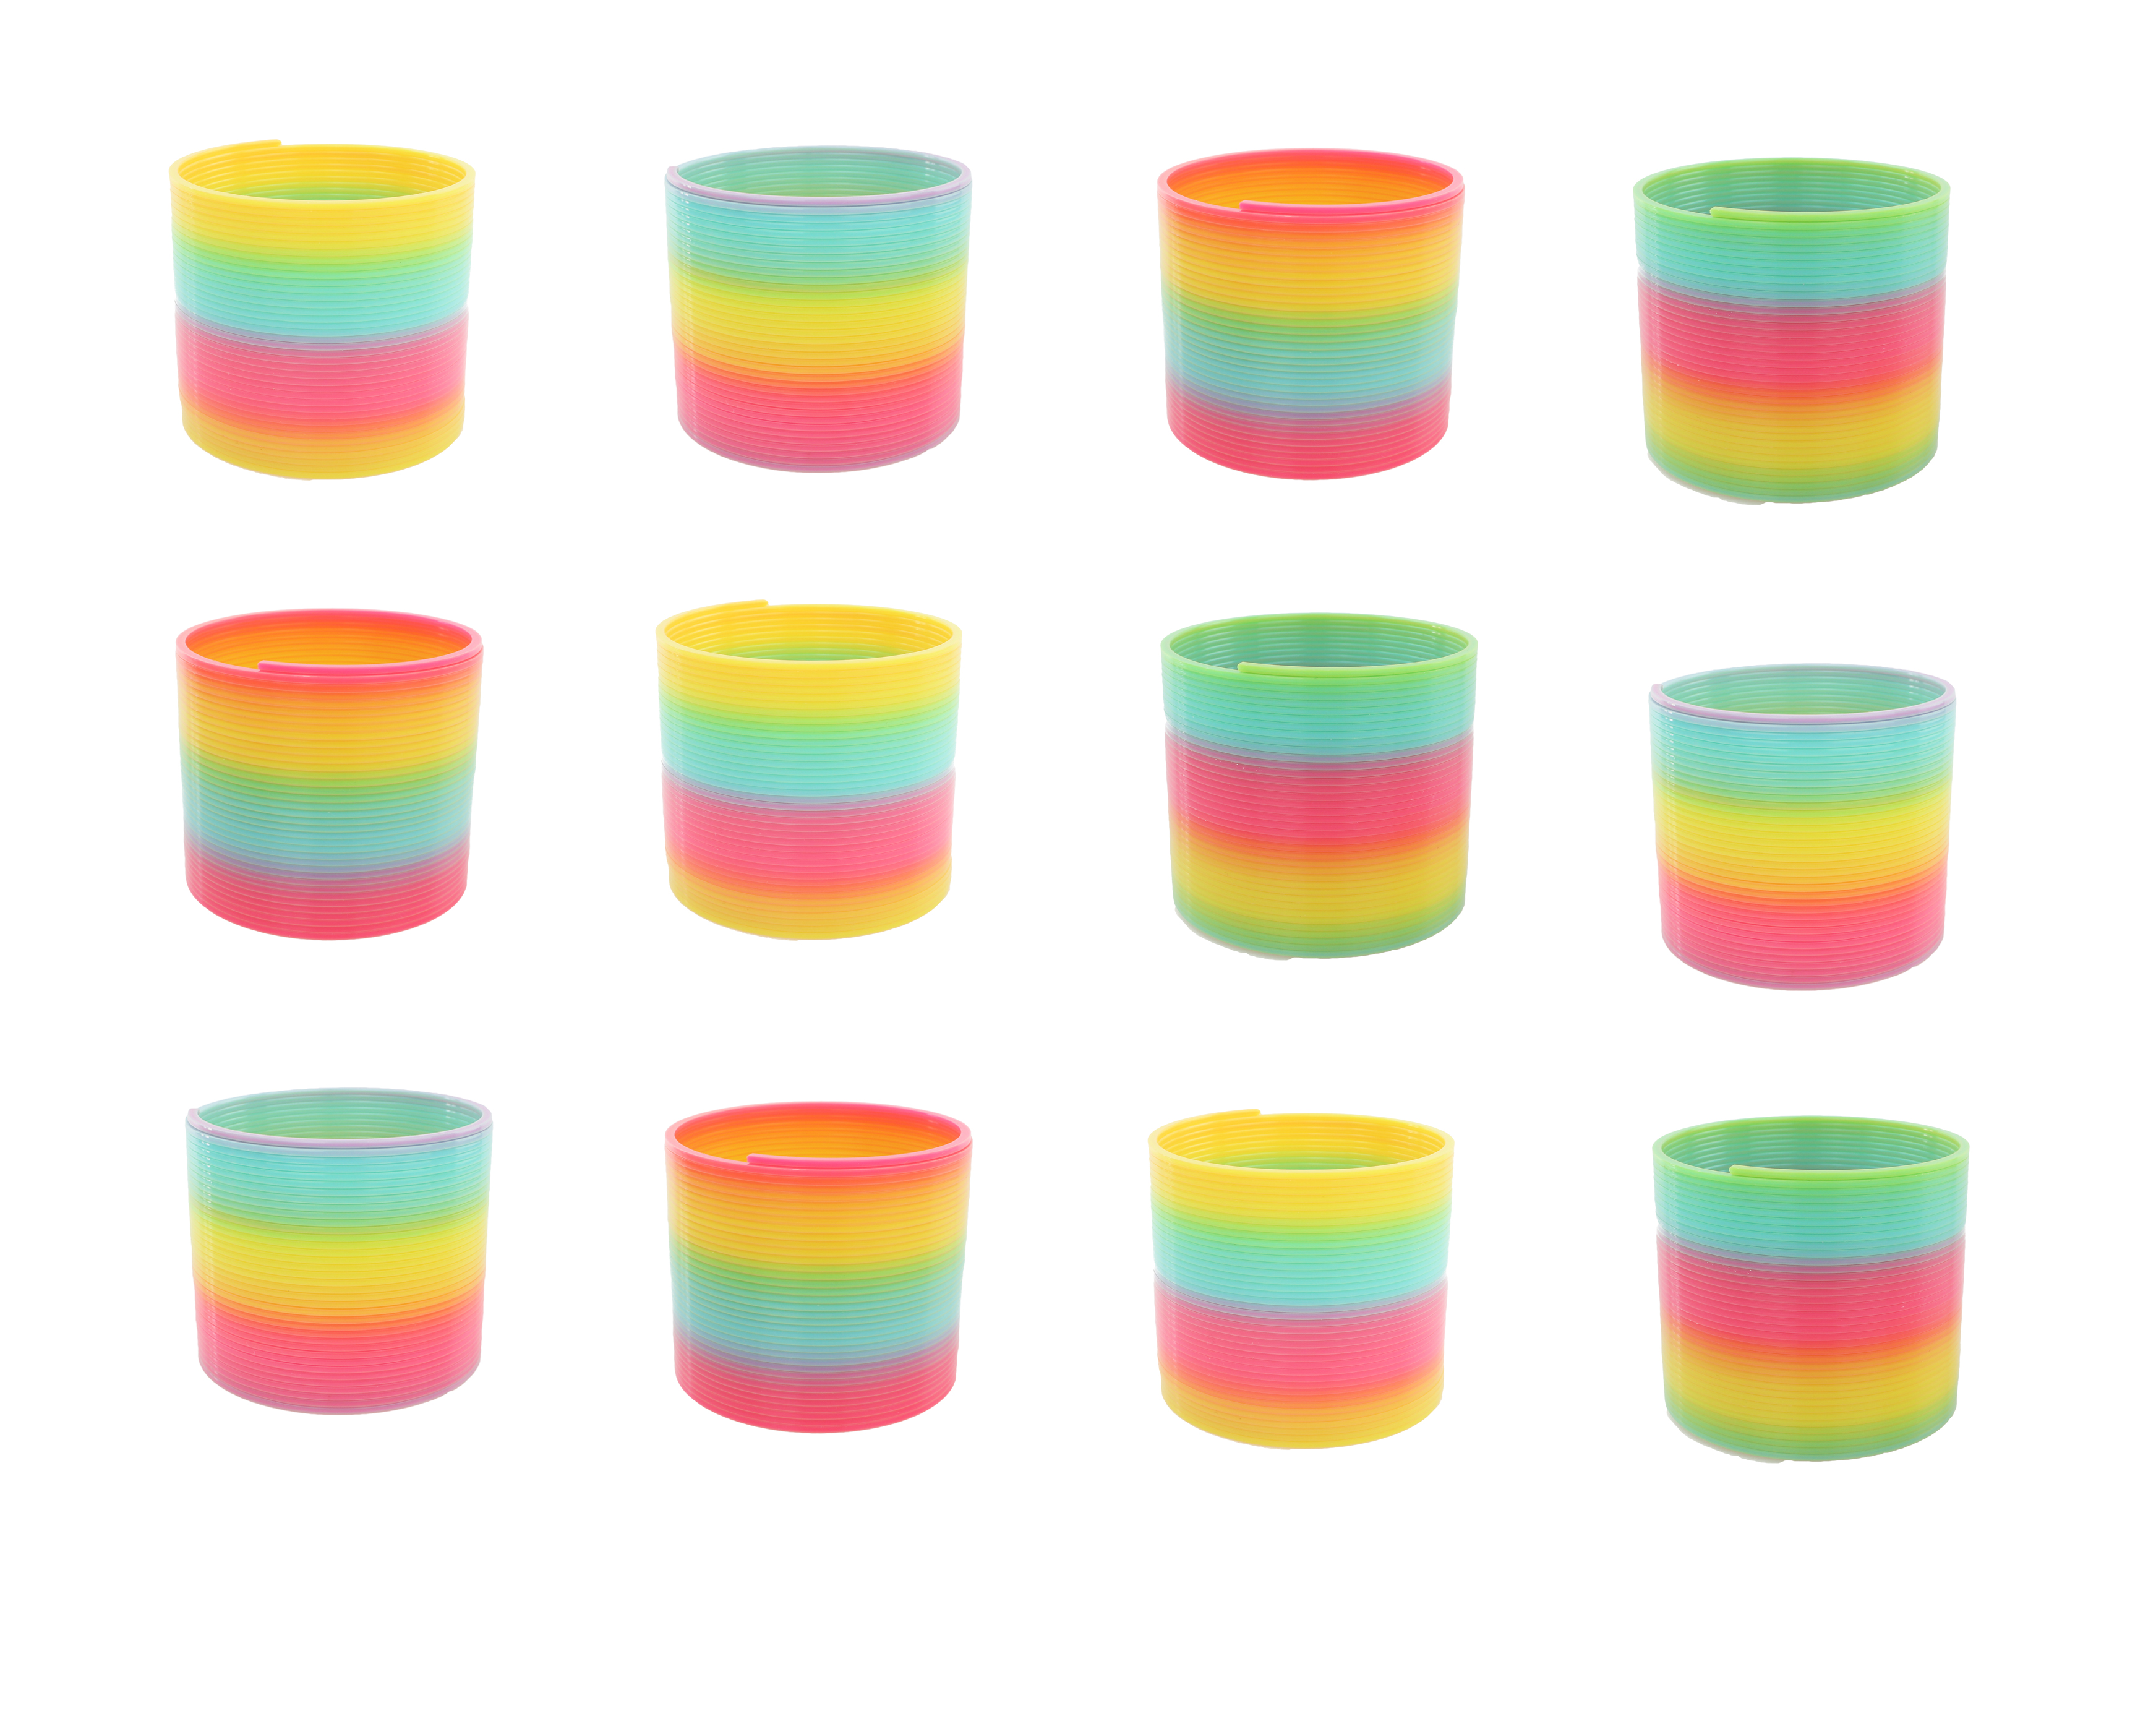 Classic 12 Pack Slinky Spring Toy With Assorted Colors Plastic For Birthday Party Favors Goodie Bag Fillers Gifts